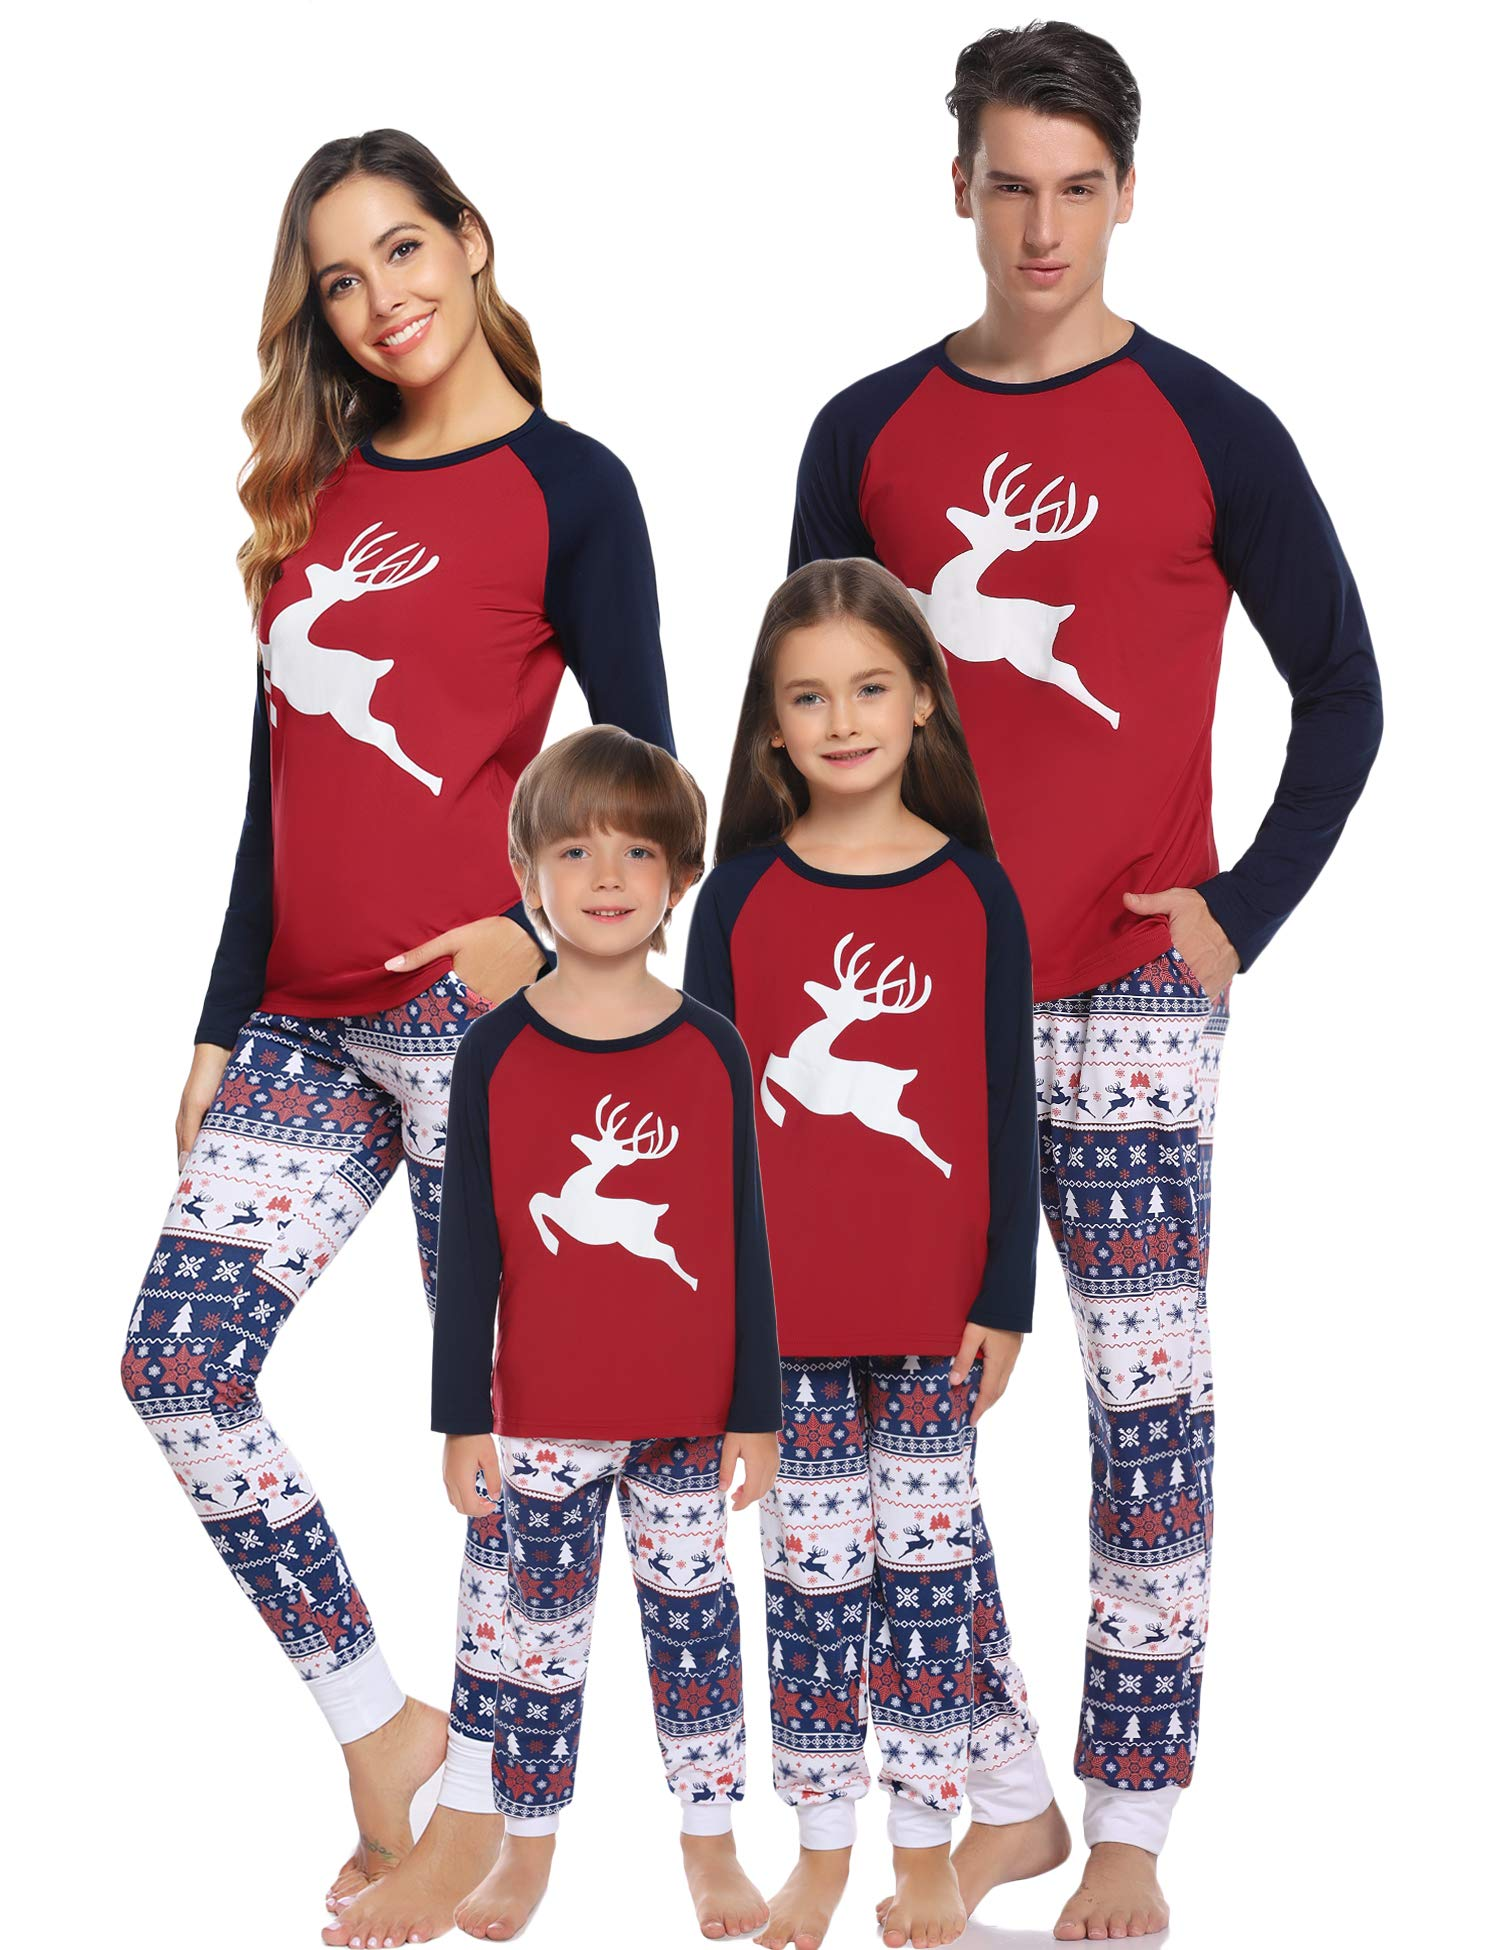 Family Christmas Pyjamas Set For Man Wom Buy Online In China At Desertcart